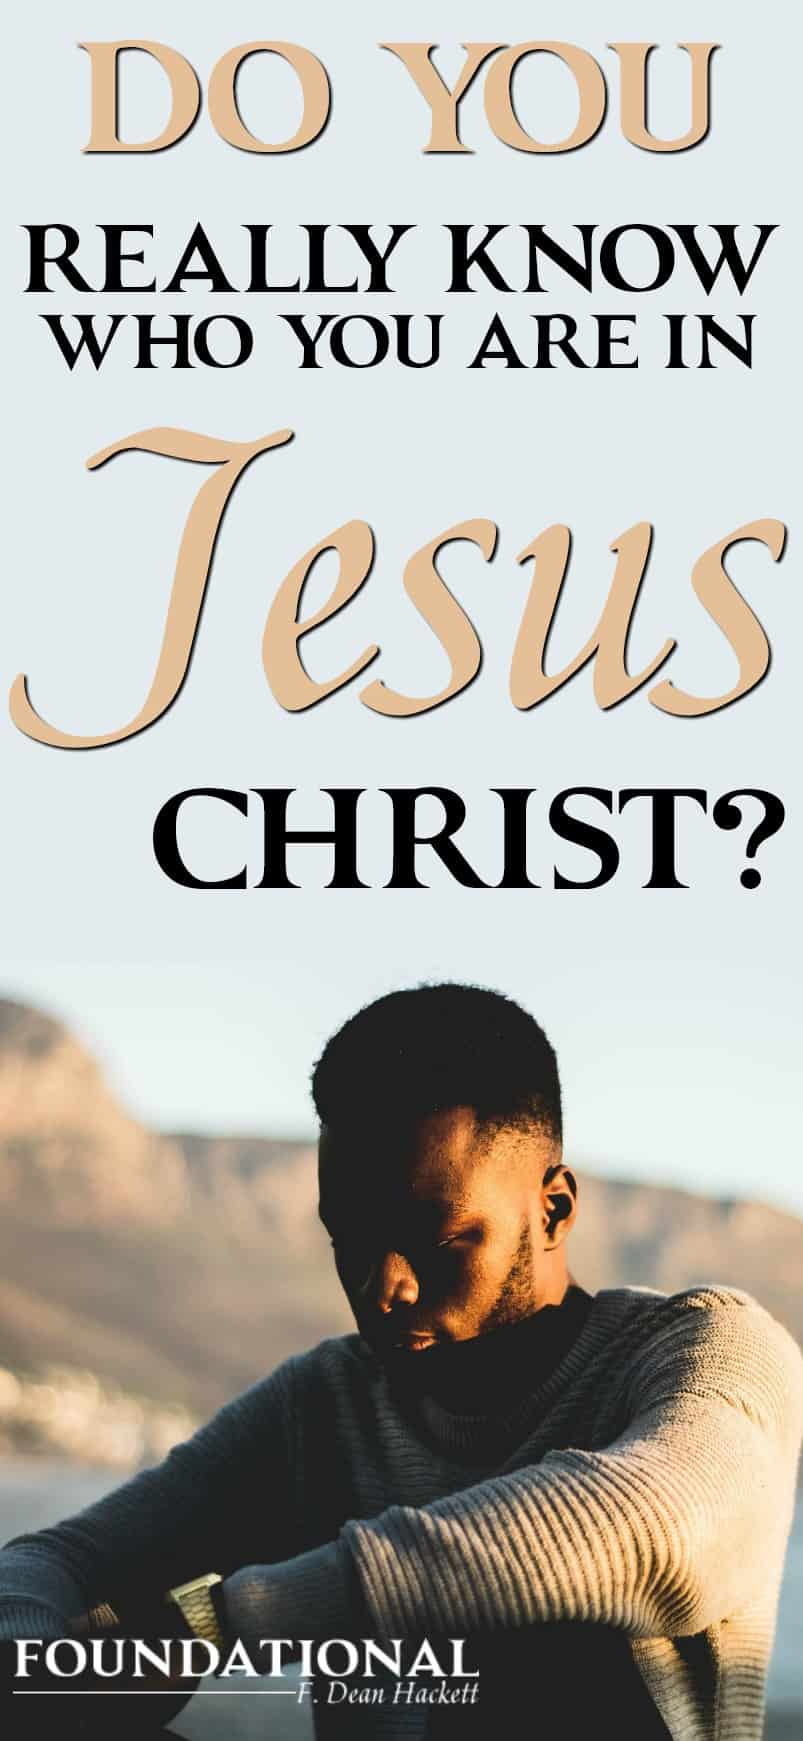 Do You Really Know Who You Are in Jesus Christ? Jesus welcomed the most unlikely people, and He welcomes us into a relationship deeper than we could imagine. #foundational #identityinChrist #onlineBiblestudy #menintheword